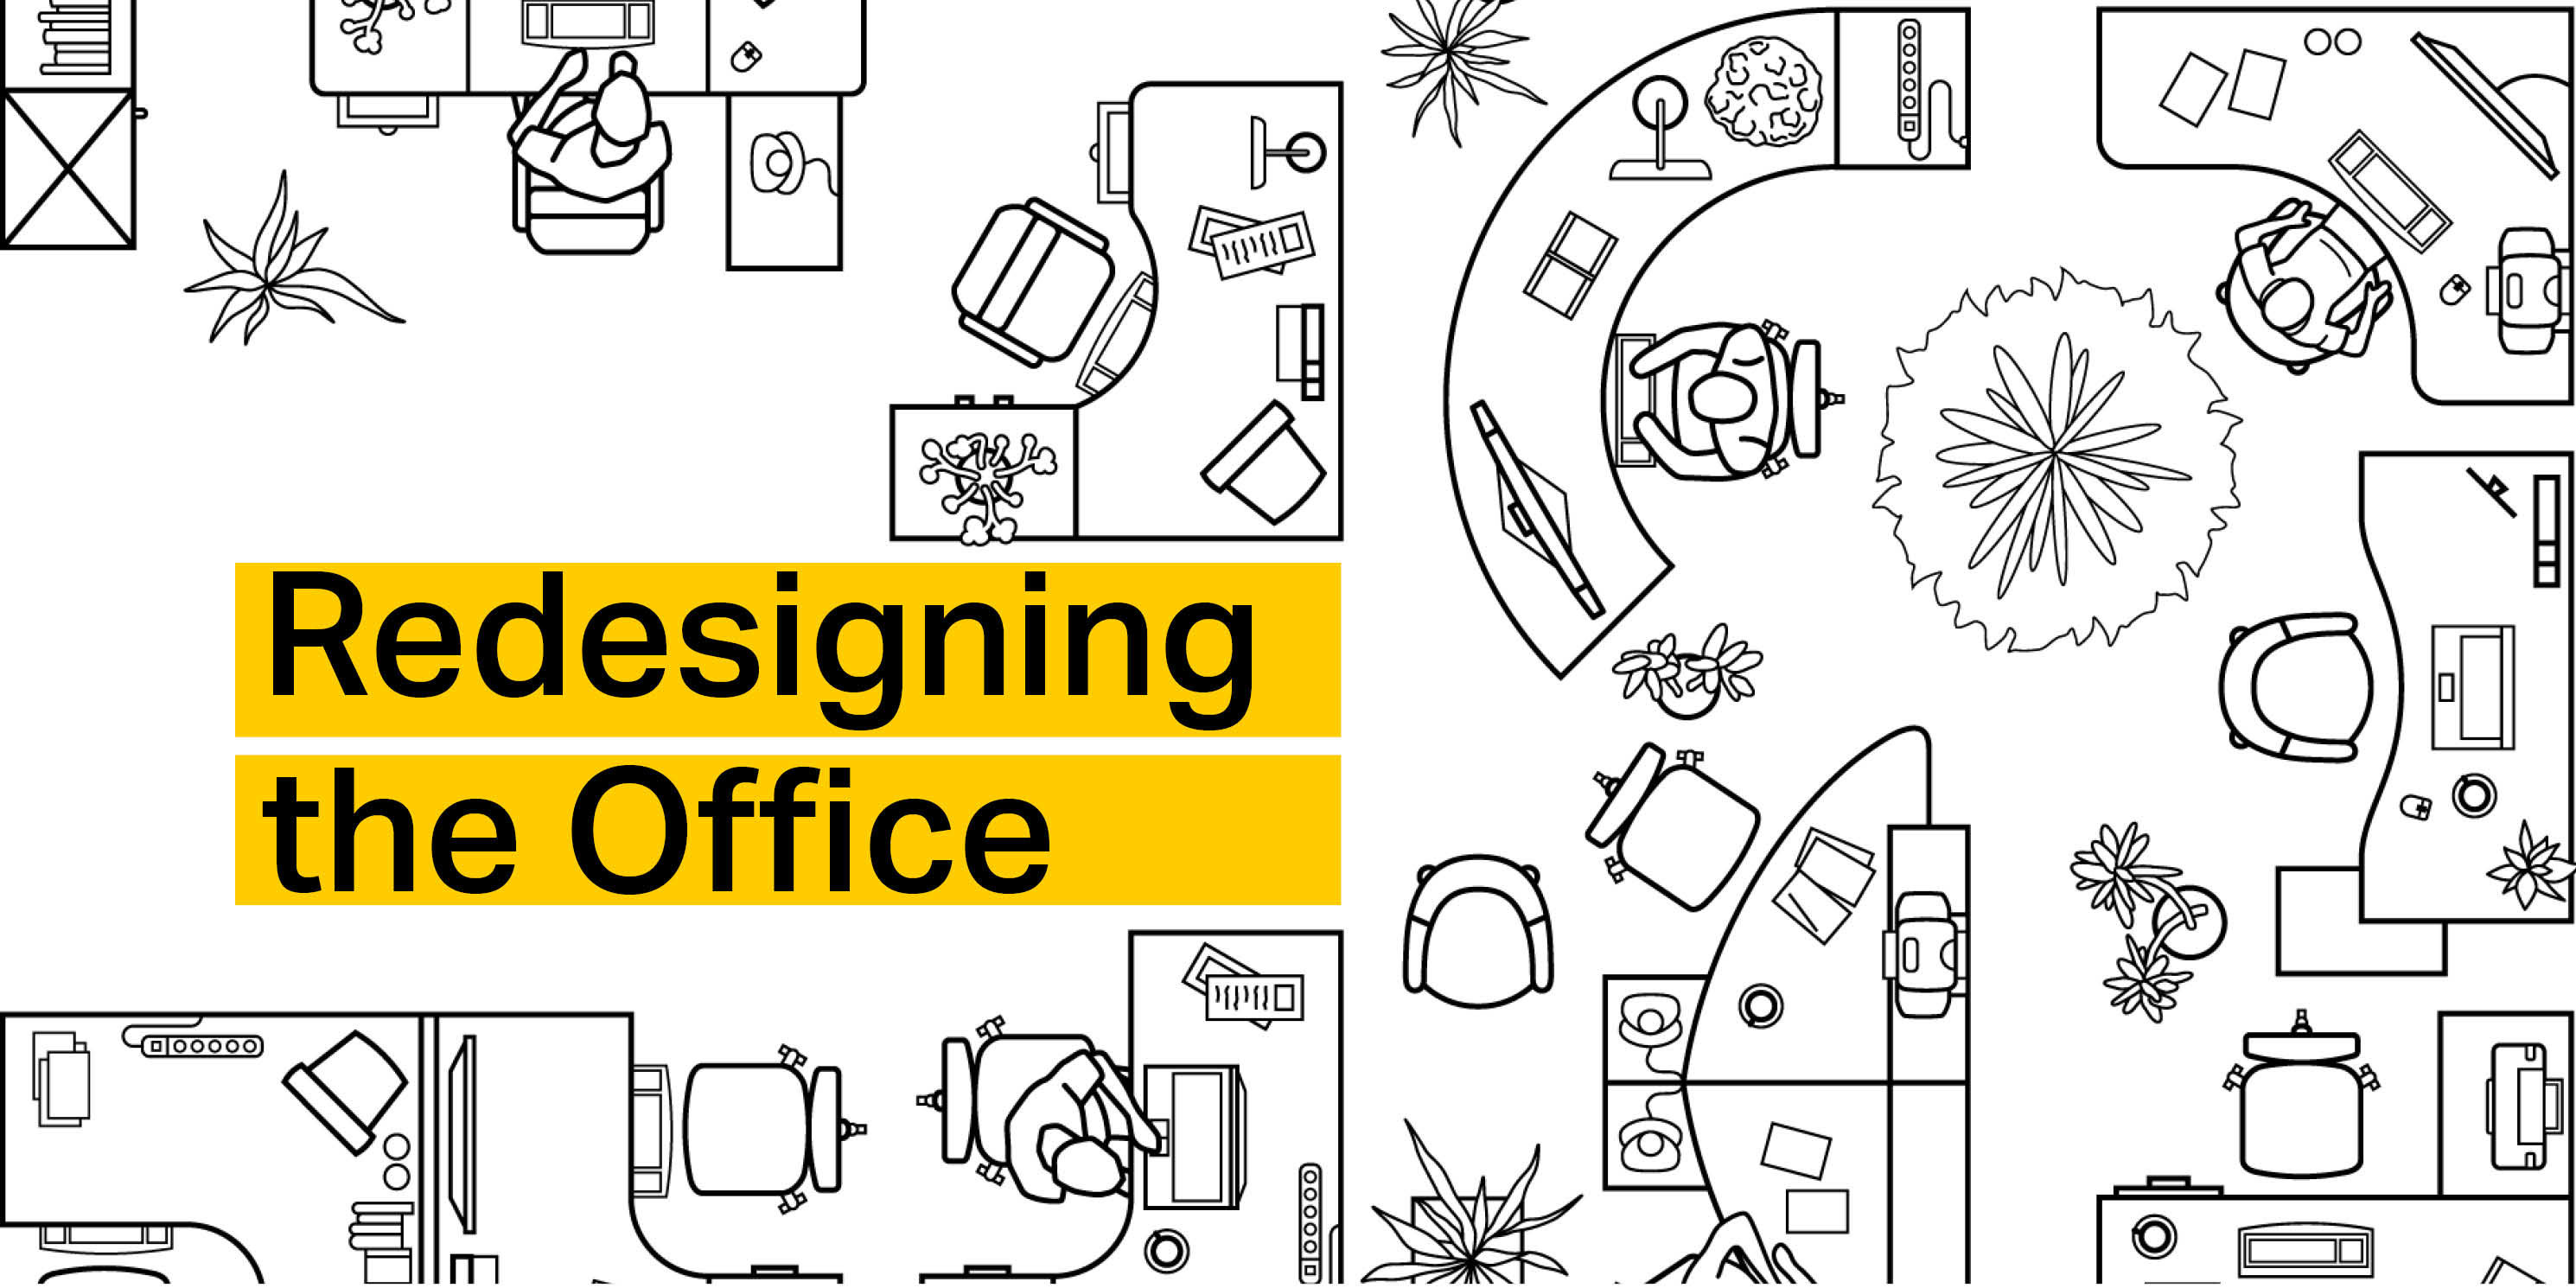 graphic advertising the Municipal Art Society of New York's Redesigning the Office event